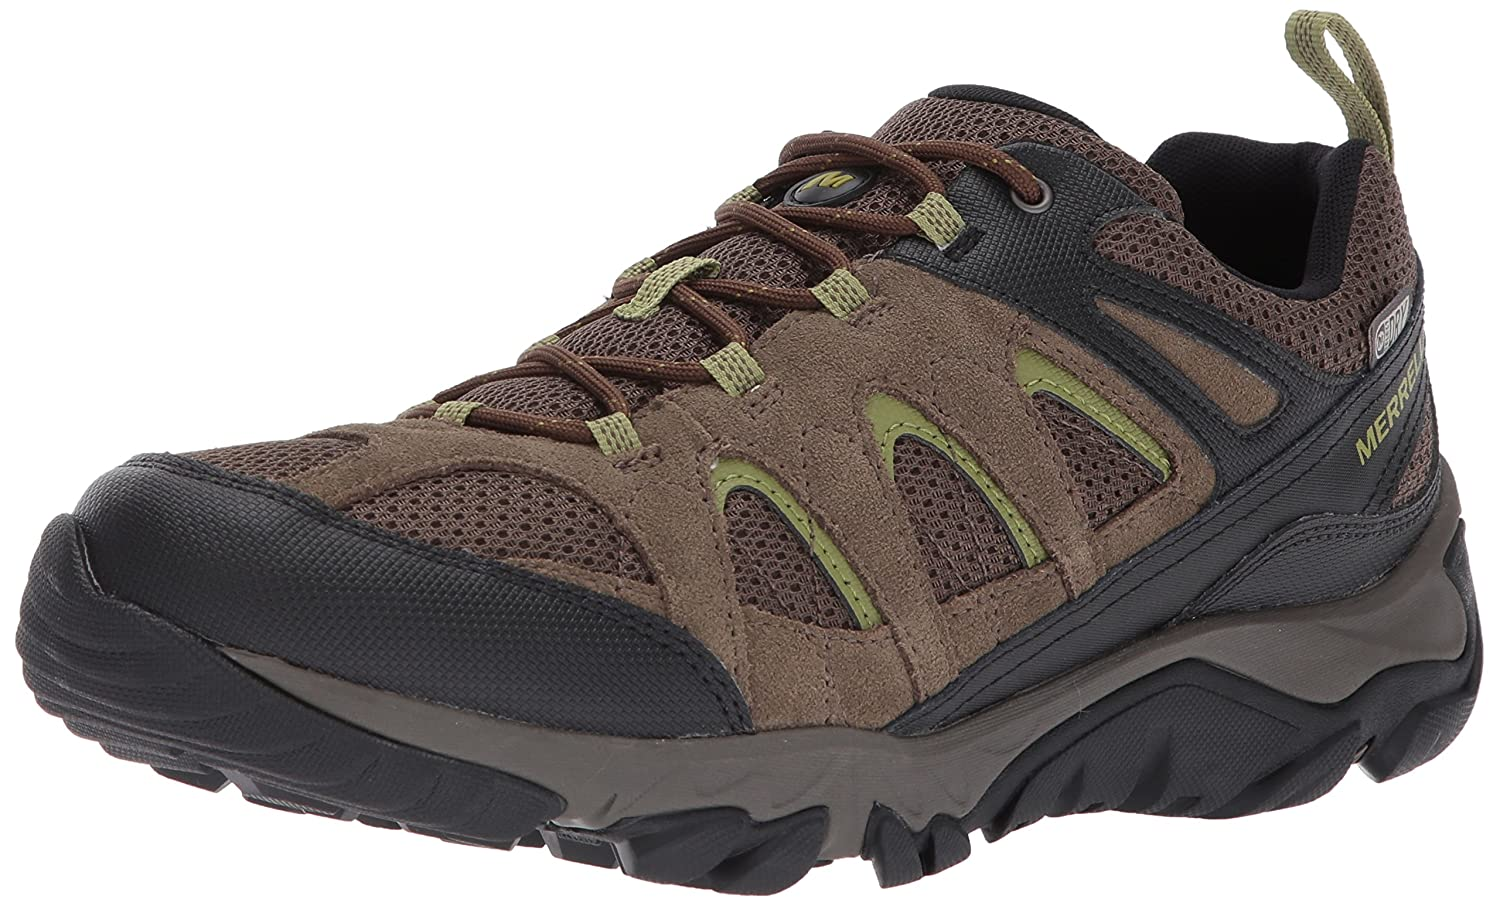 Merrell Men's Outmost Vent Waterproof Hiking Shoe B072QZMYK6 10 W US|Boulder